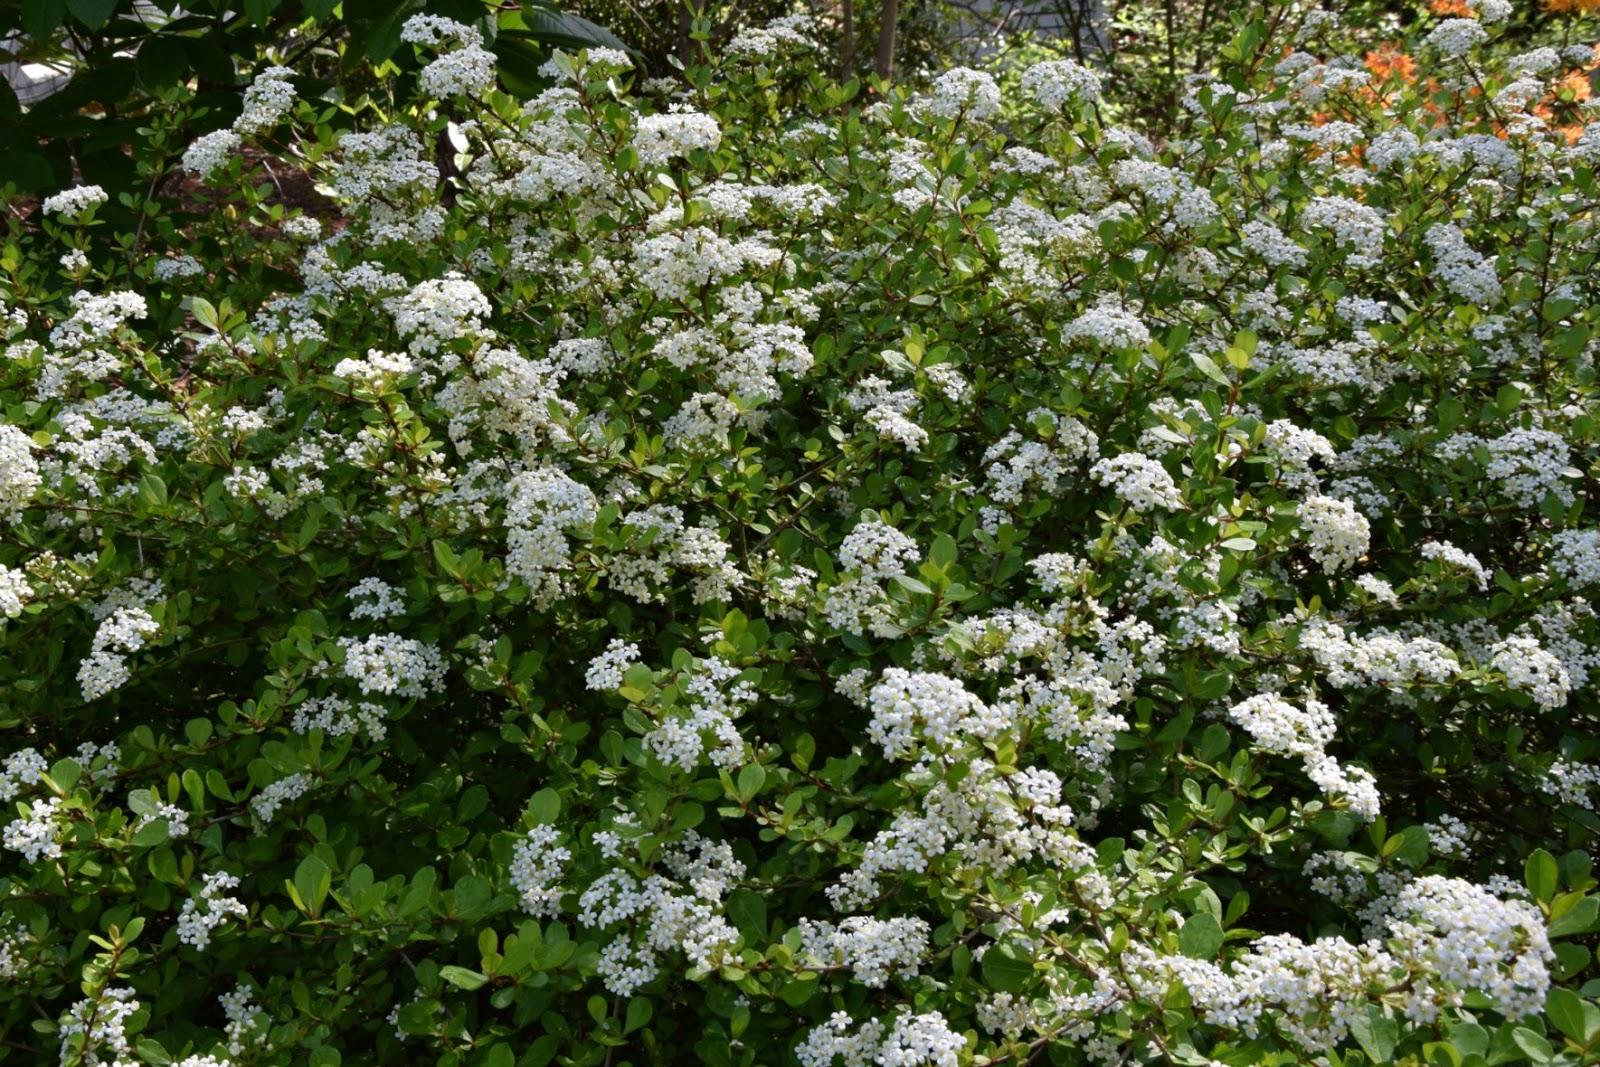 Hedge Bushes: Using Georgia Native Plants: Native Shrubs For Supporting